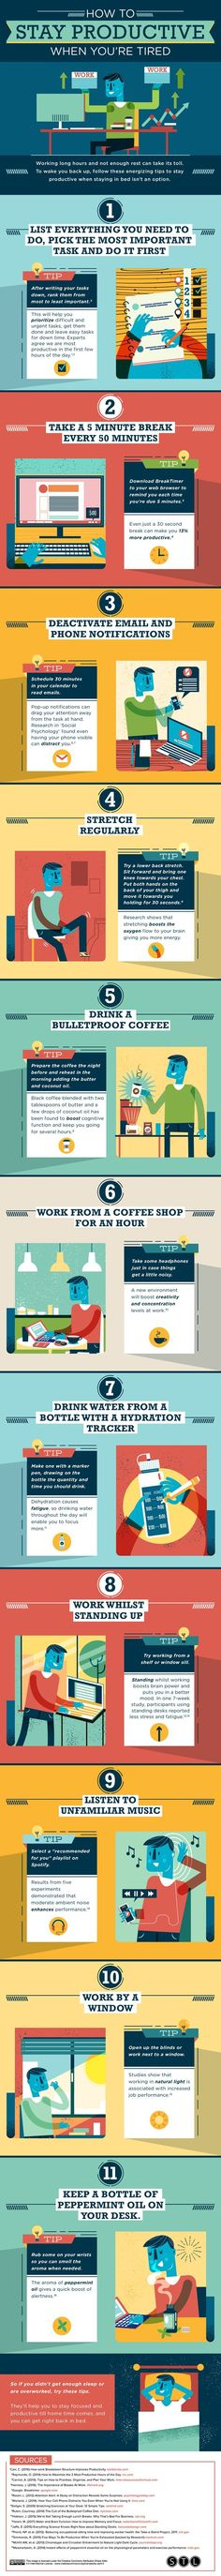 Small business tips: Wondering how to be productive all day? If you're on a deadline, the 11 tips on this infographic will help you stay productive when you're dragging! Perfect for entrepreneurs. Business Marketing, Business Tips, Online Business, Content Marketing, Media Marketing, Time Management Tips, Business Management, Office Management, Talent Management